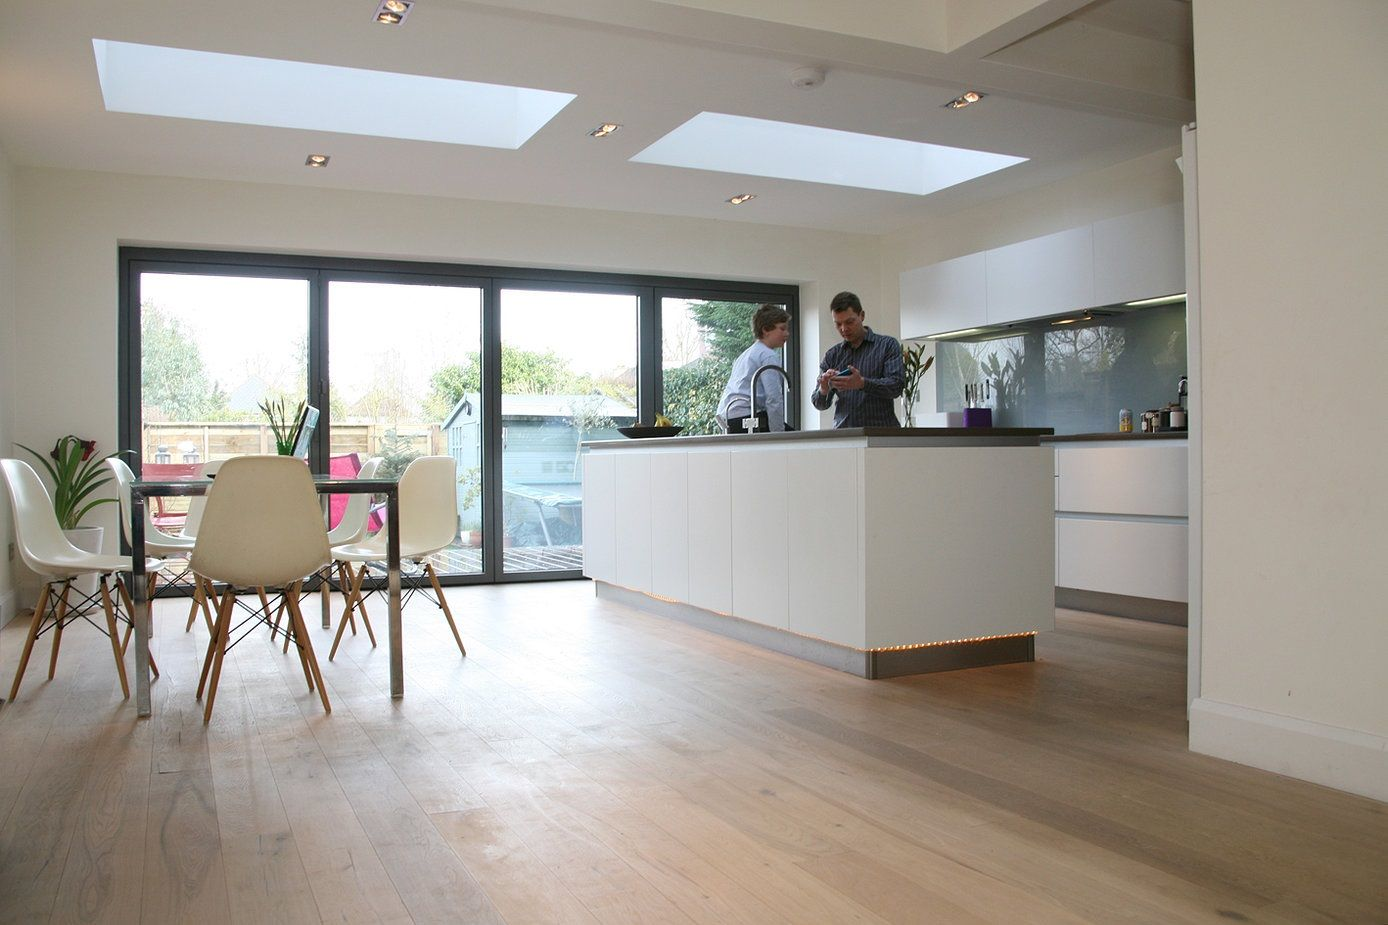 House Extension Ideas Designs House Extension Photo Gallery Single Storey Kitchen